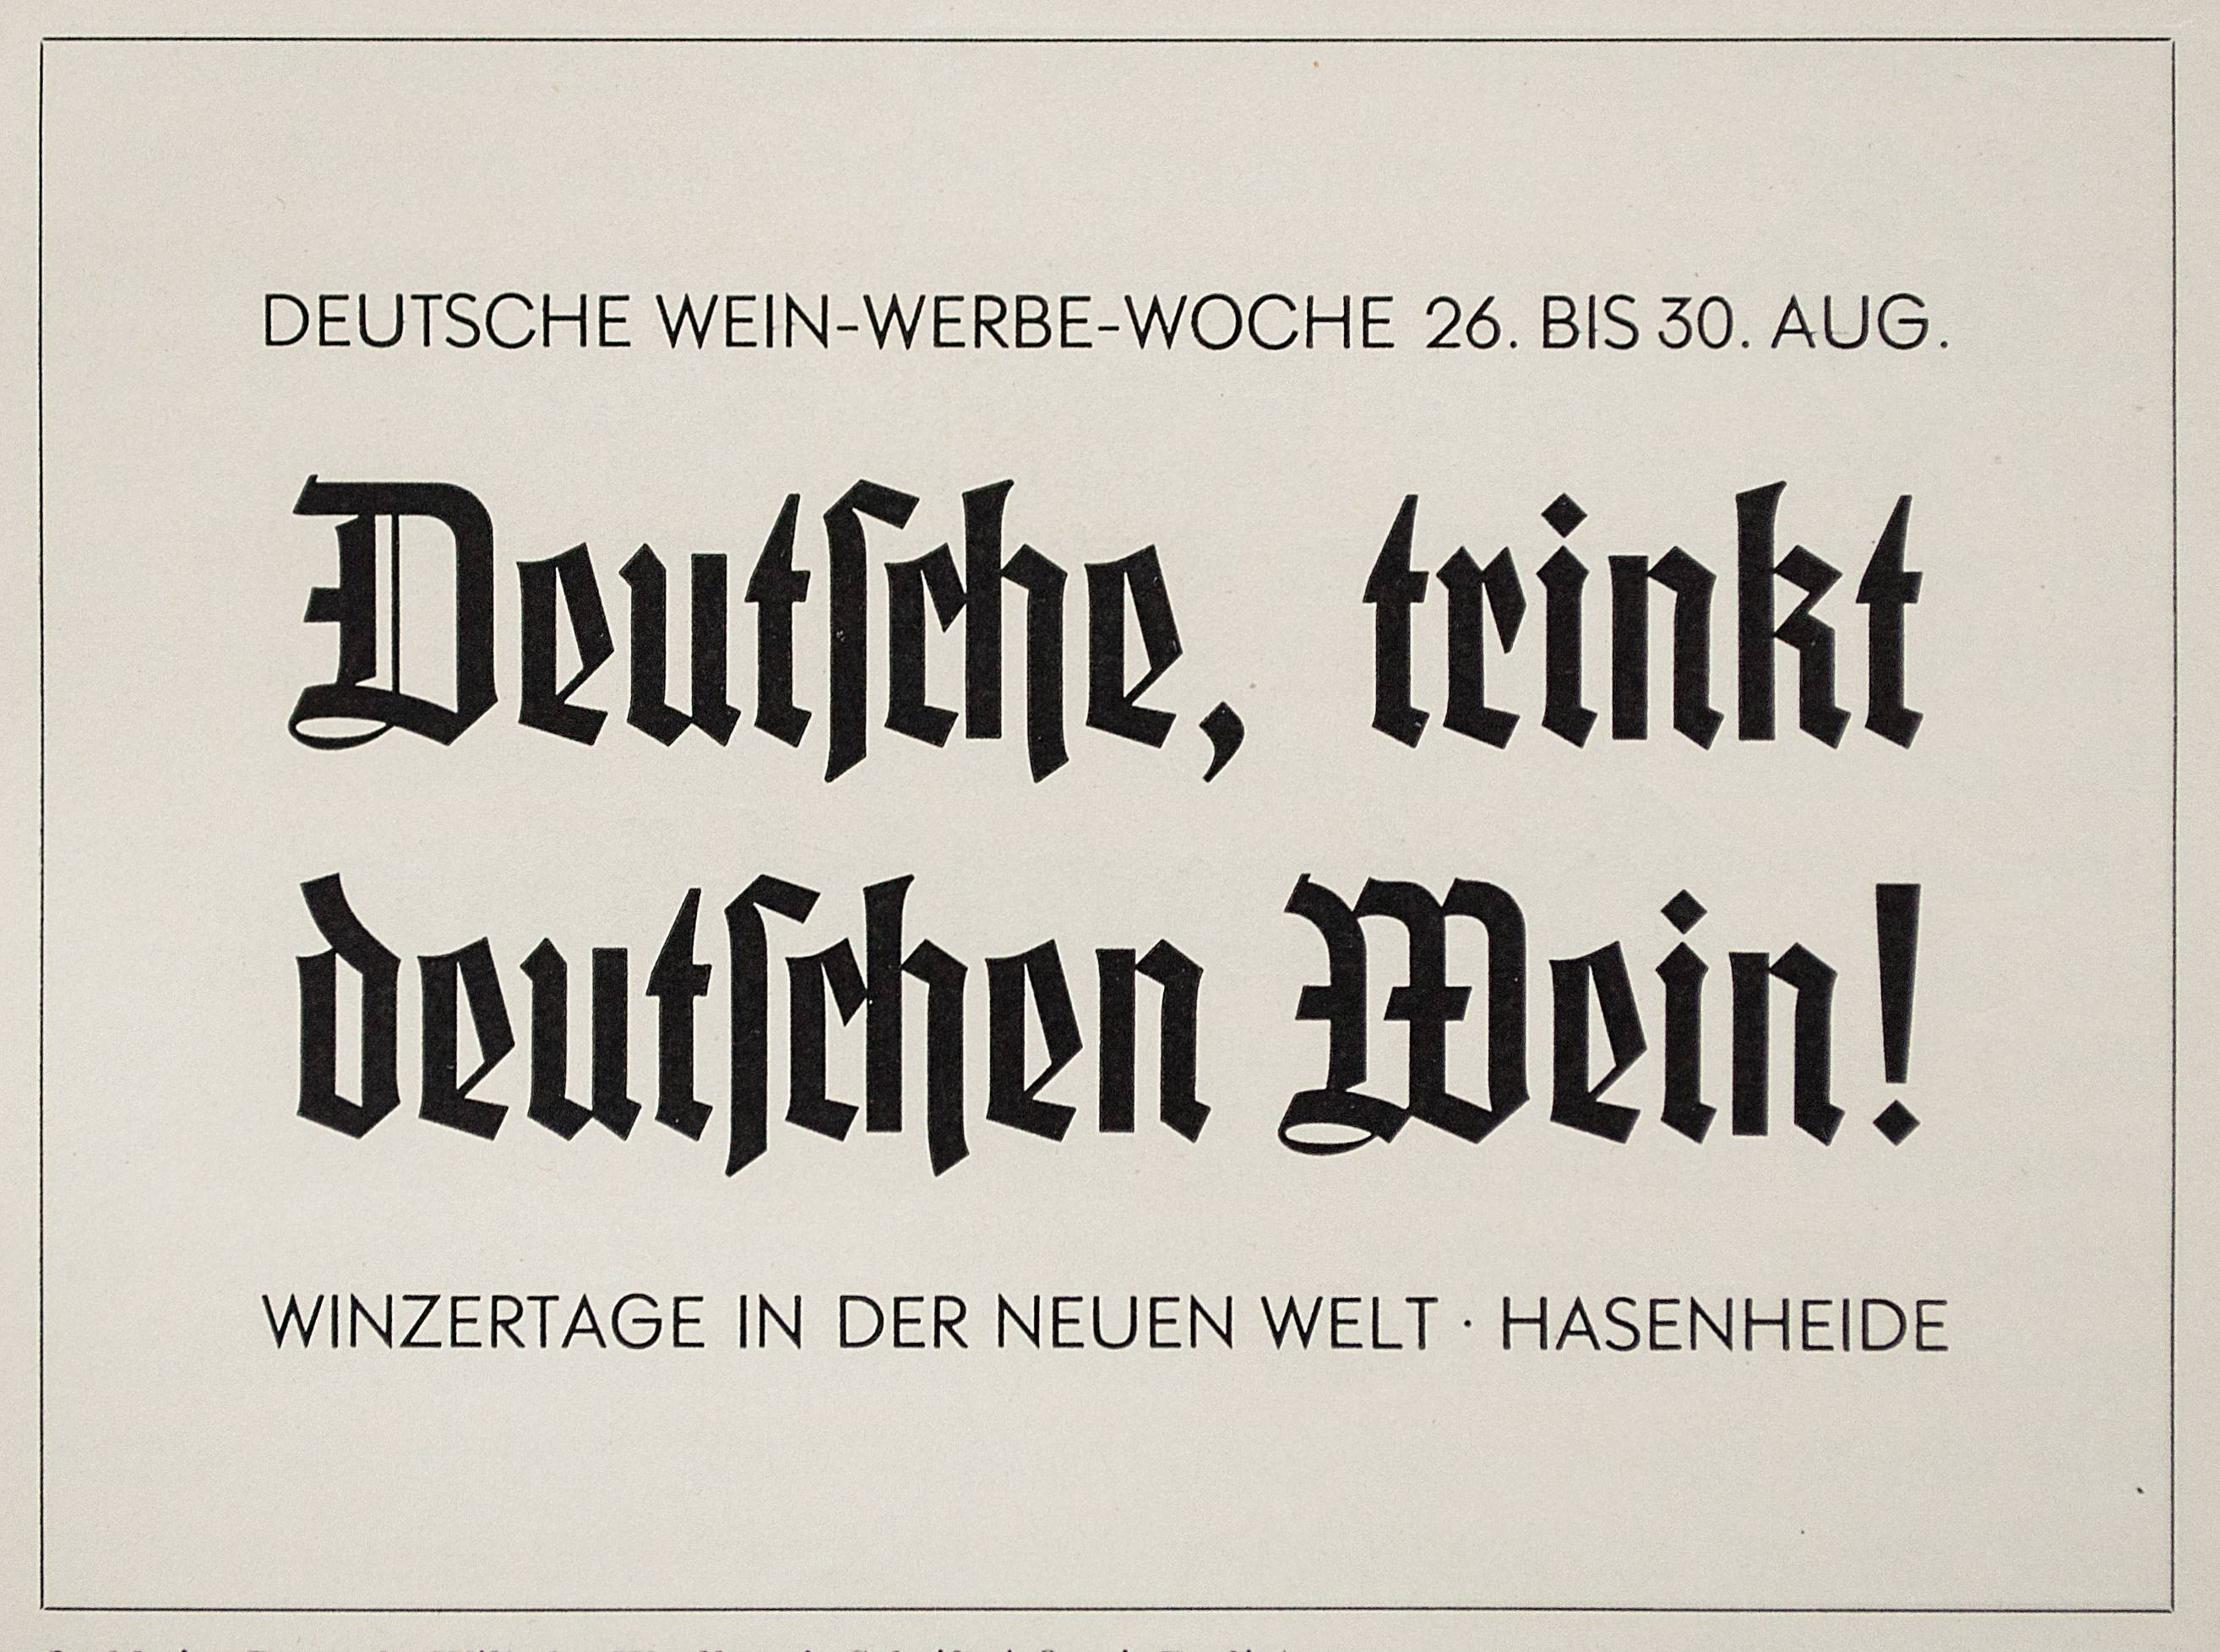 In specimens of the early 1930s German type foundries suggested mixing blackletter with geometric sans serifs. The first example shows Element (1934) in the headlines accompanied by Futura (1927), both by the Bauer Type Foundry (not related to Friedrich Bauer). Another showing demonstrates a mix of Jochheim-Deutsch (1934) and Atlantis Grotesk (1933), both by Wilhelm Woellmer type foundry. (Reproduced from *Klimschs Jahrbuch*, volumes 27 and 28, with kind permission from the collection of Erik Spiekermann.)